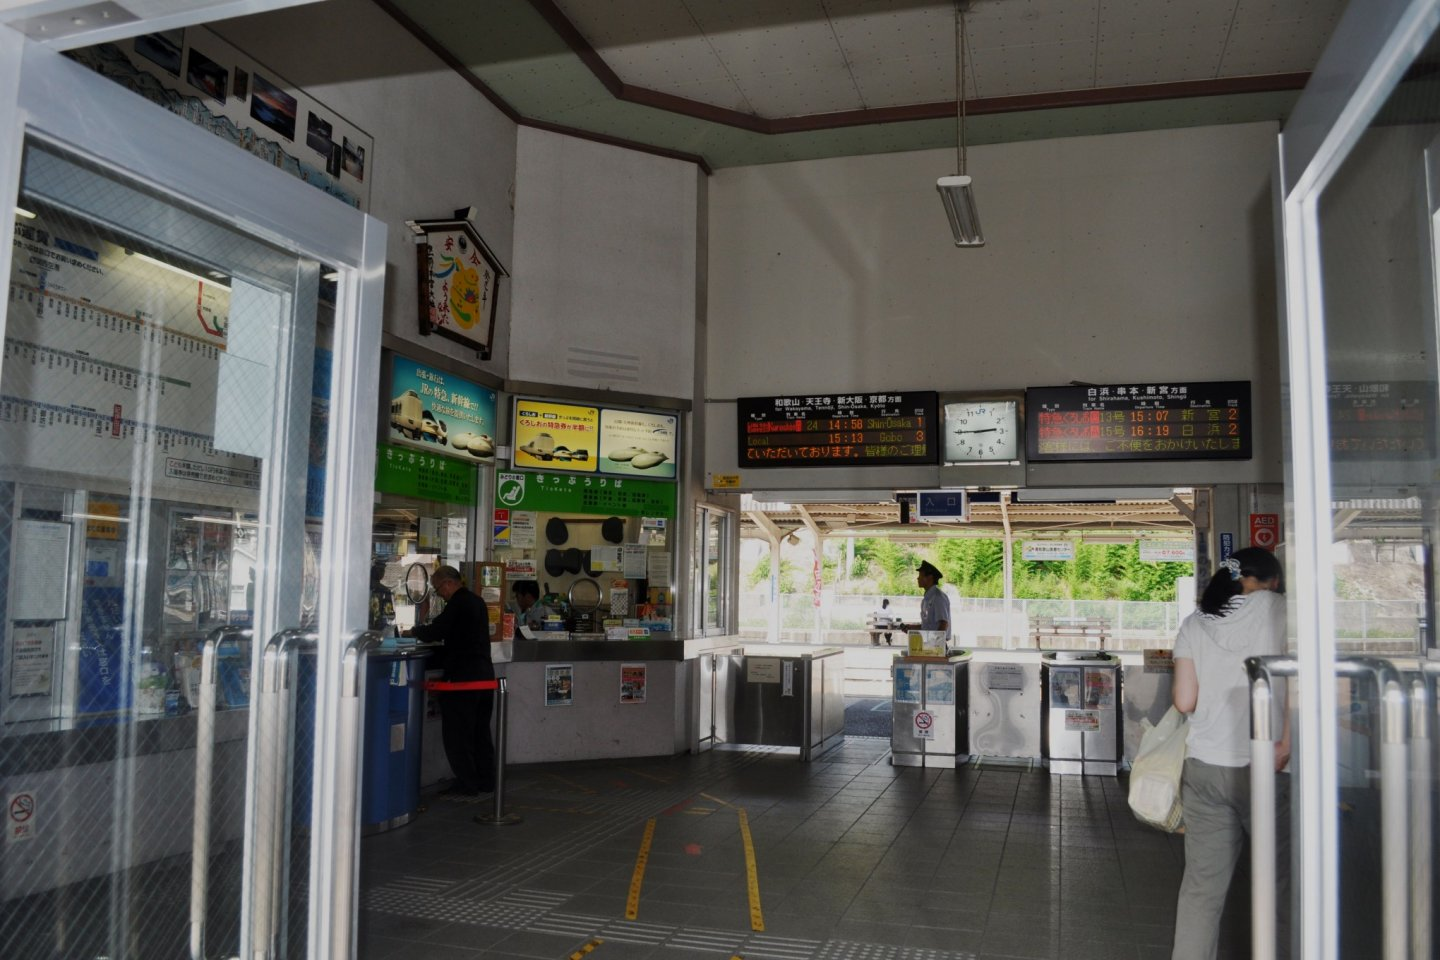 Ticket office, ticket machines and gates